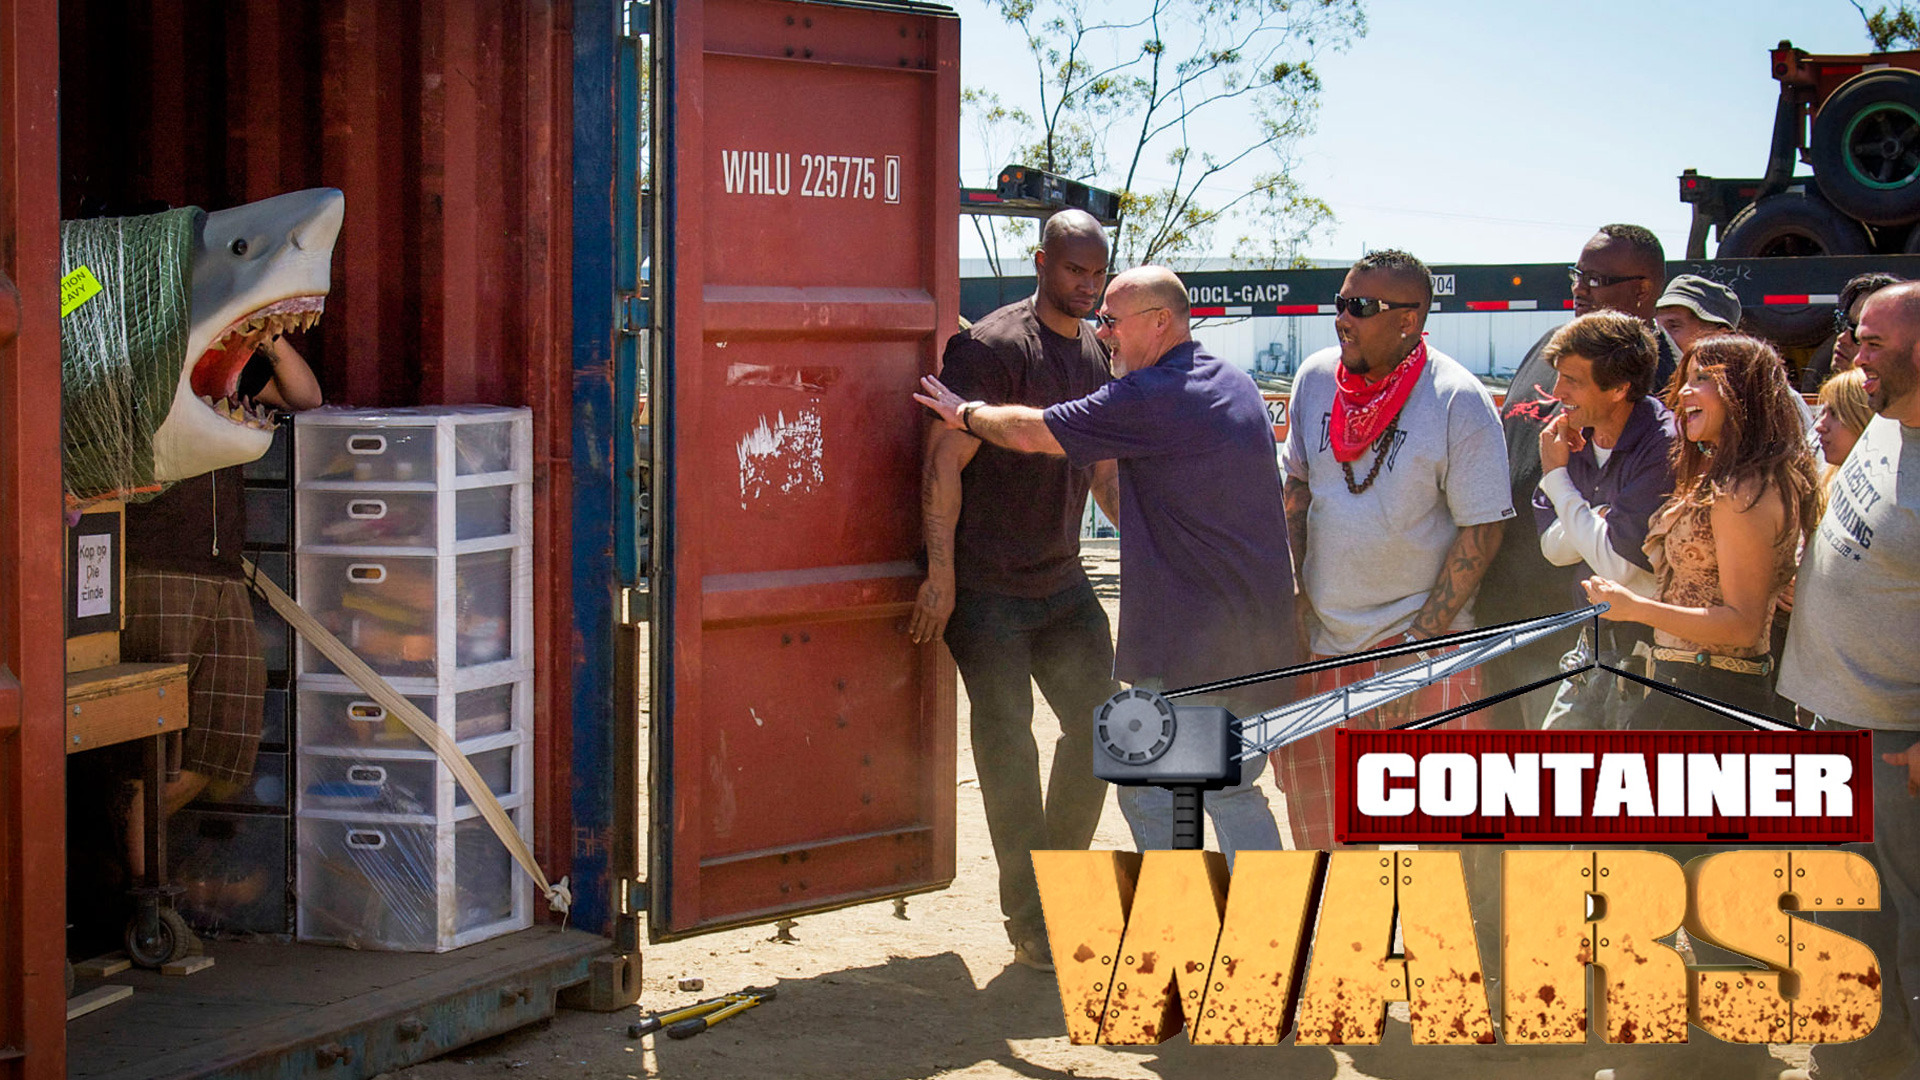 Show Container Wars